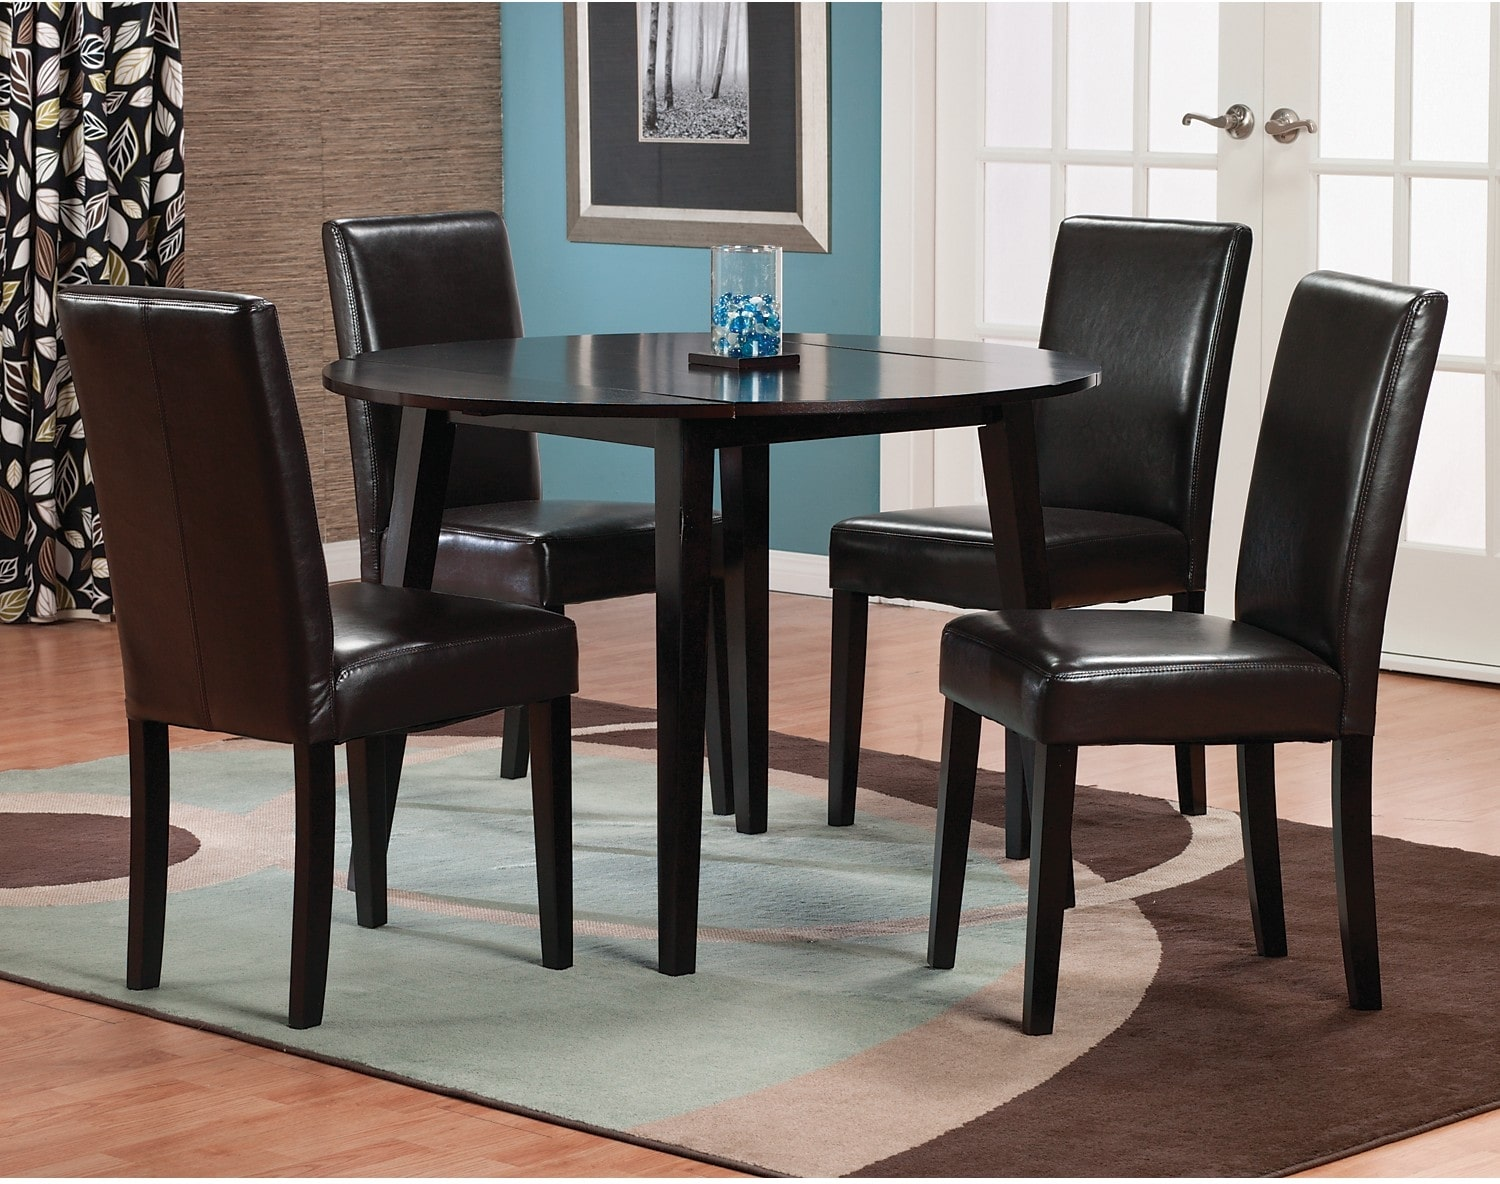 Dining Room Furniture Dakota 5 Piece Round Table Dining Package With